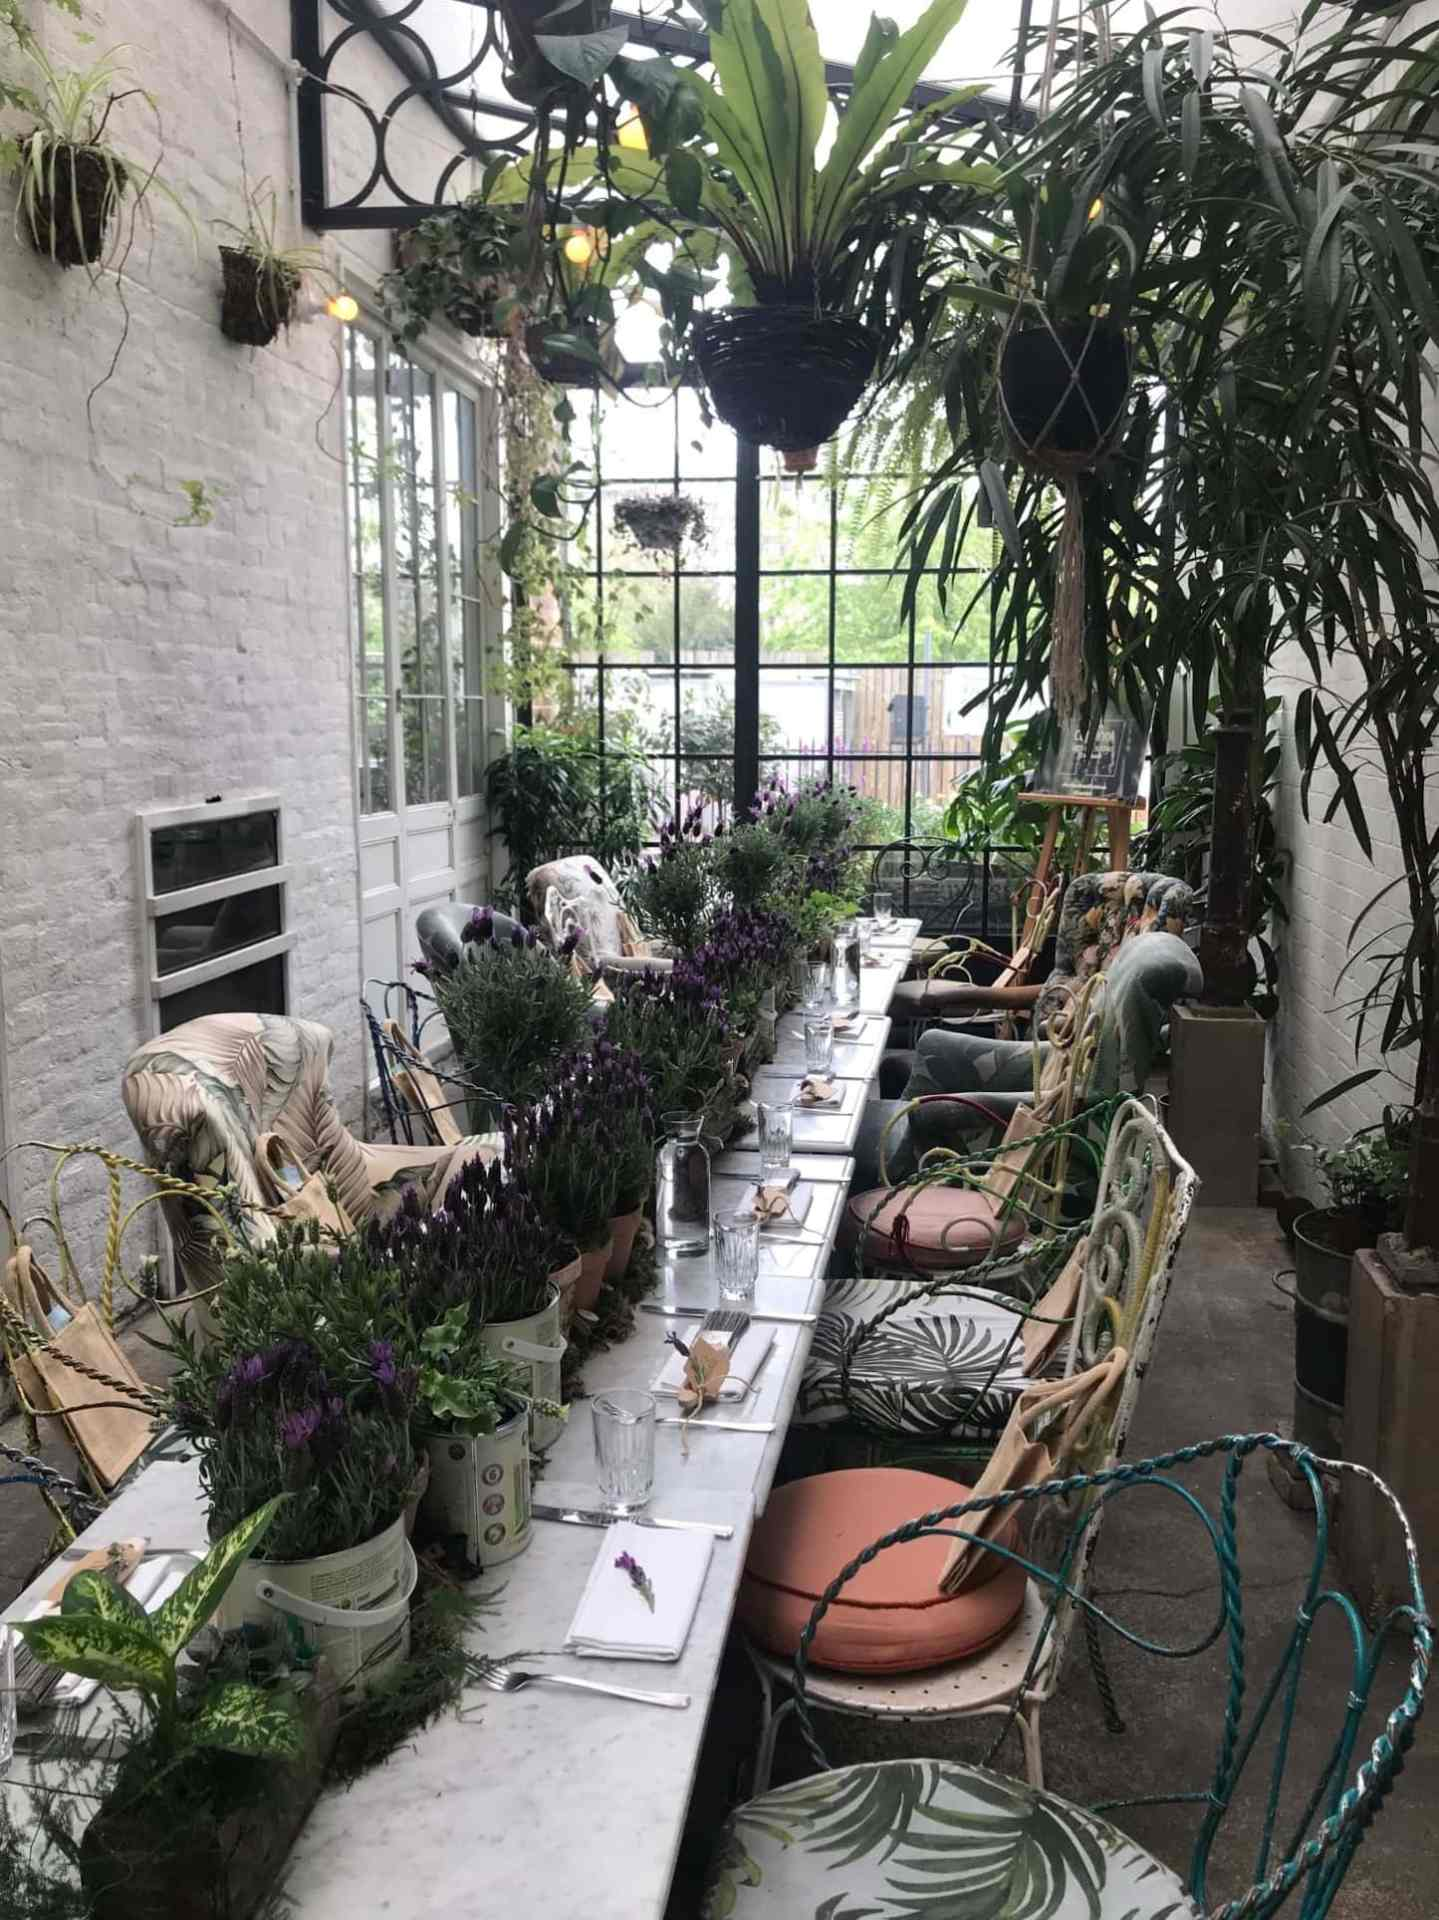 The stunning Cuprinol event held at the Bourne and Hollingsworth Buildings in Clerkenwell